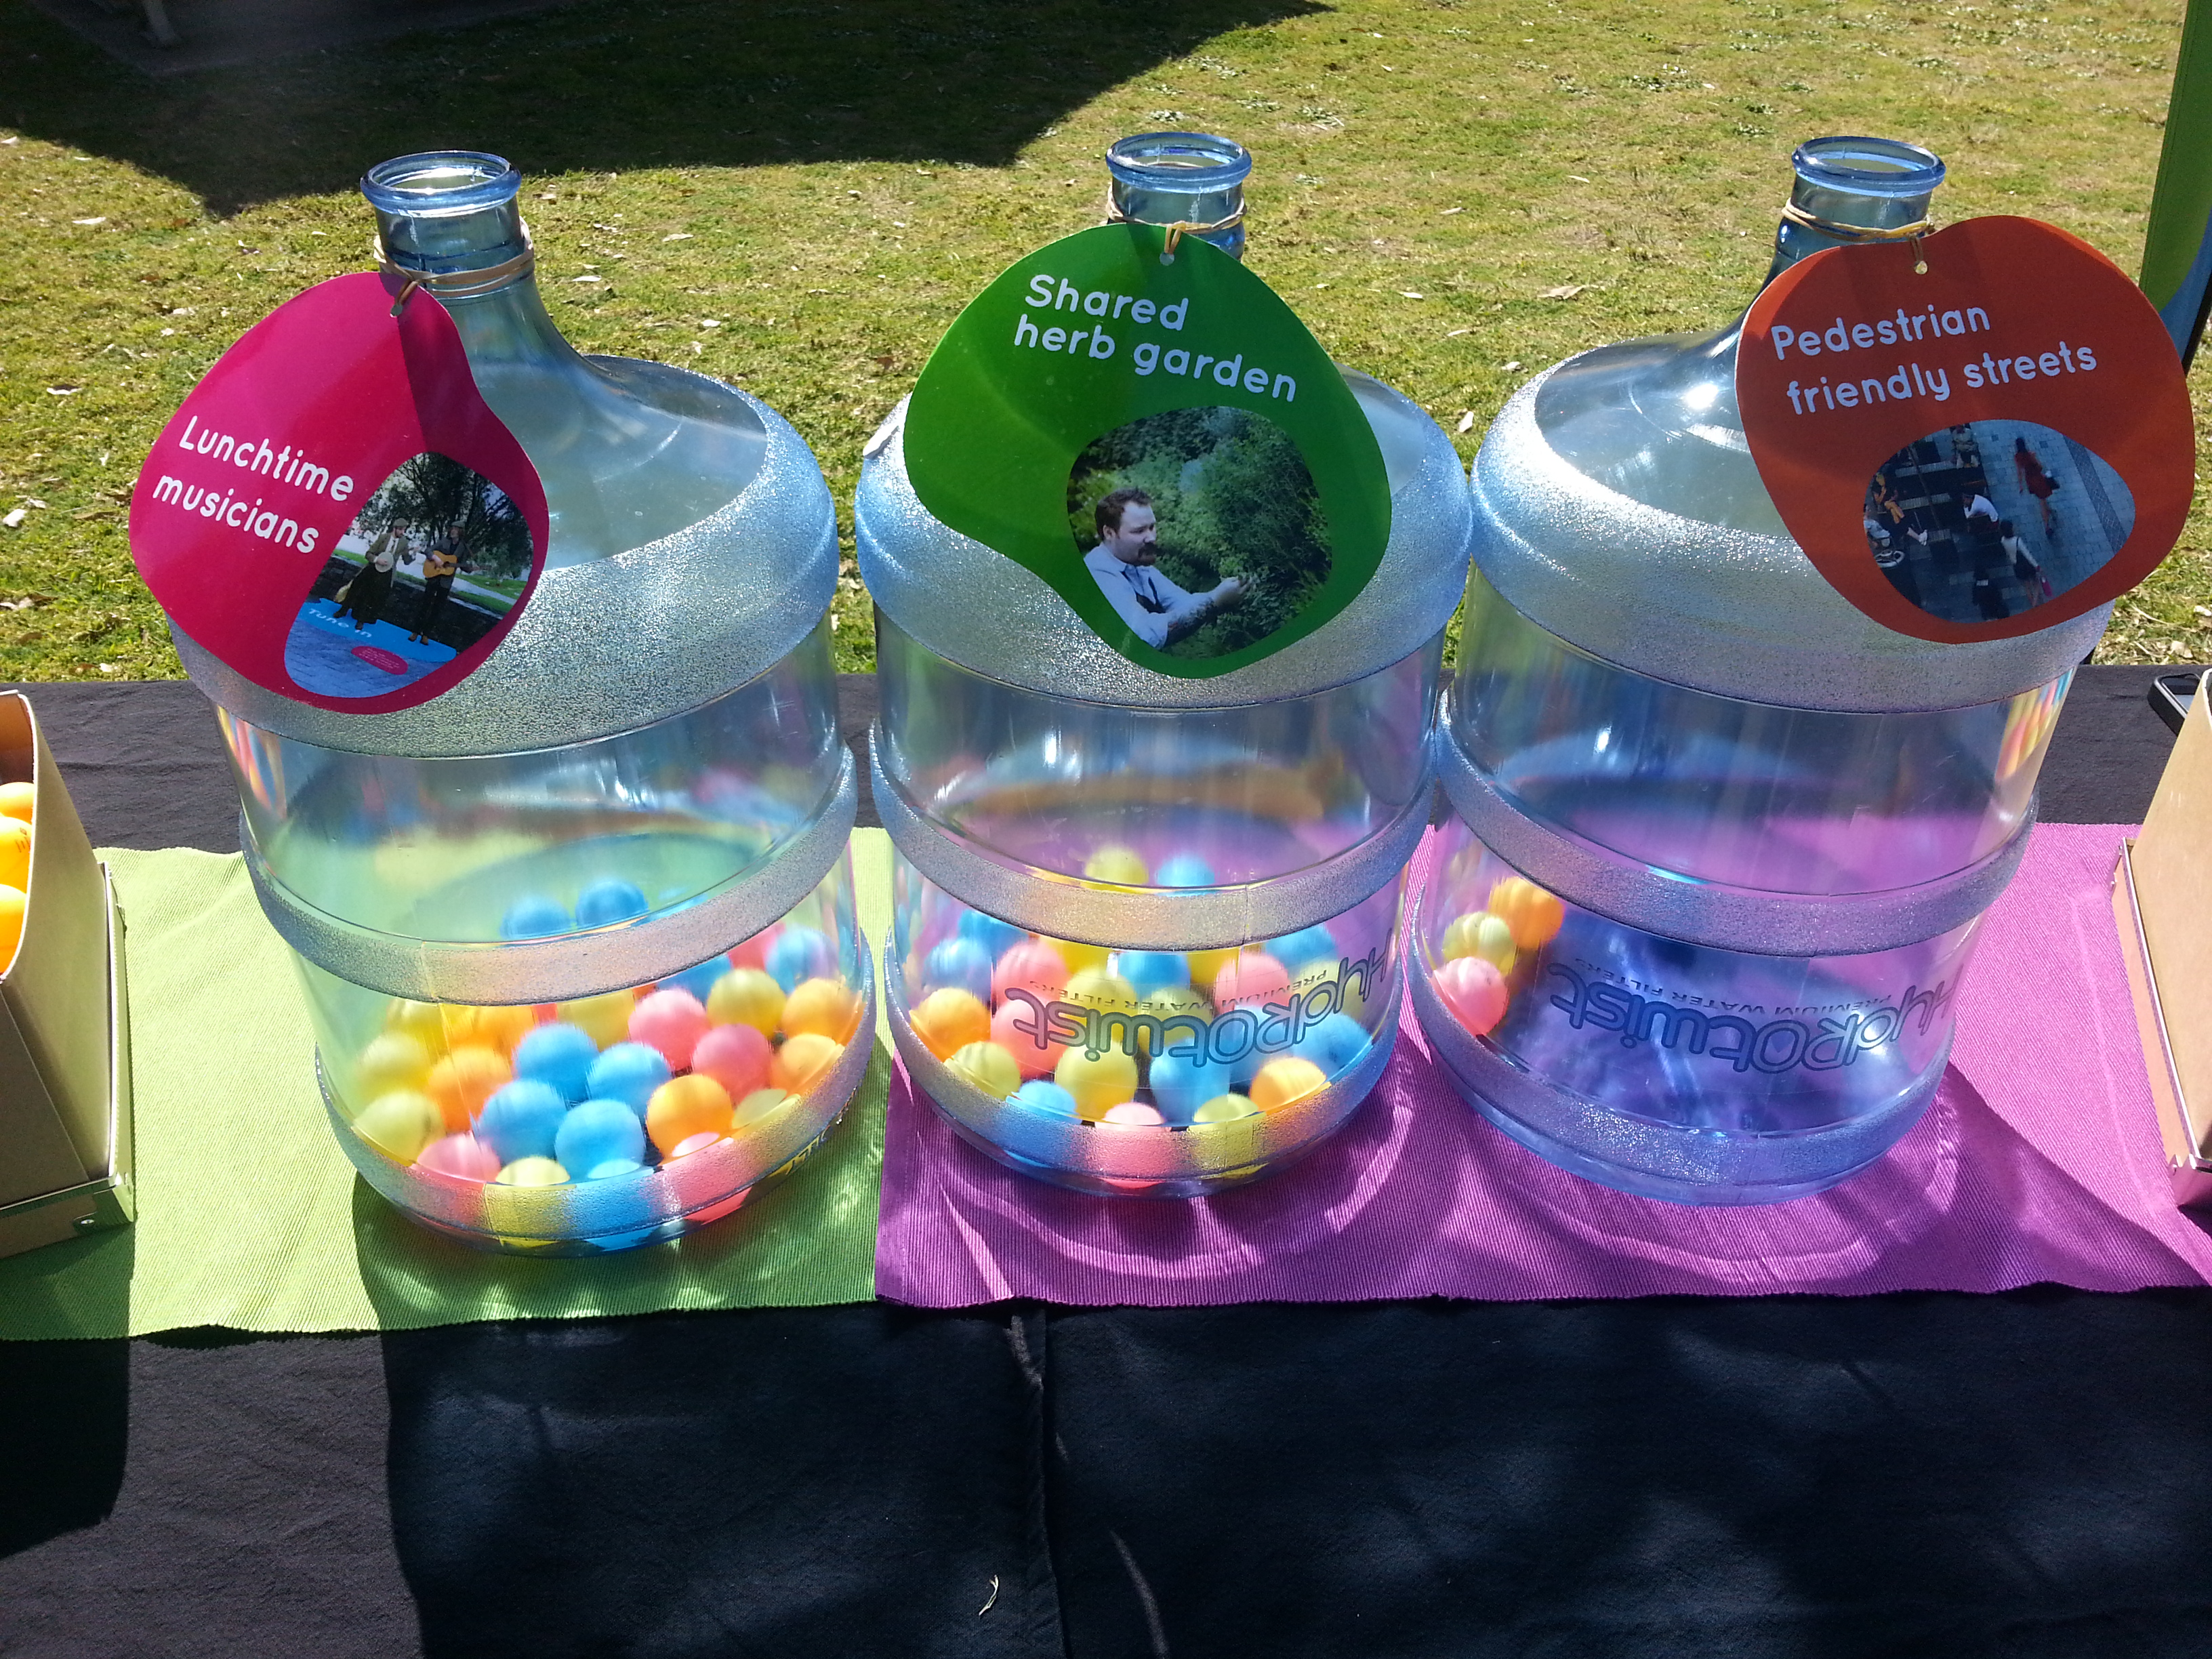 Water Bottles With Table Tennis Balls Showing Voting System